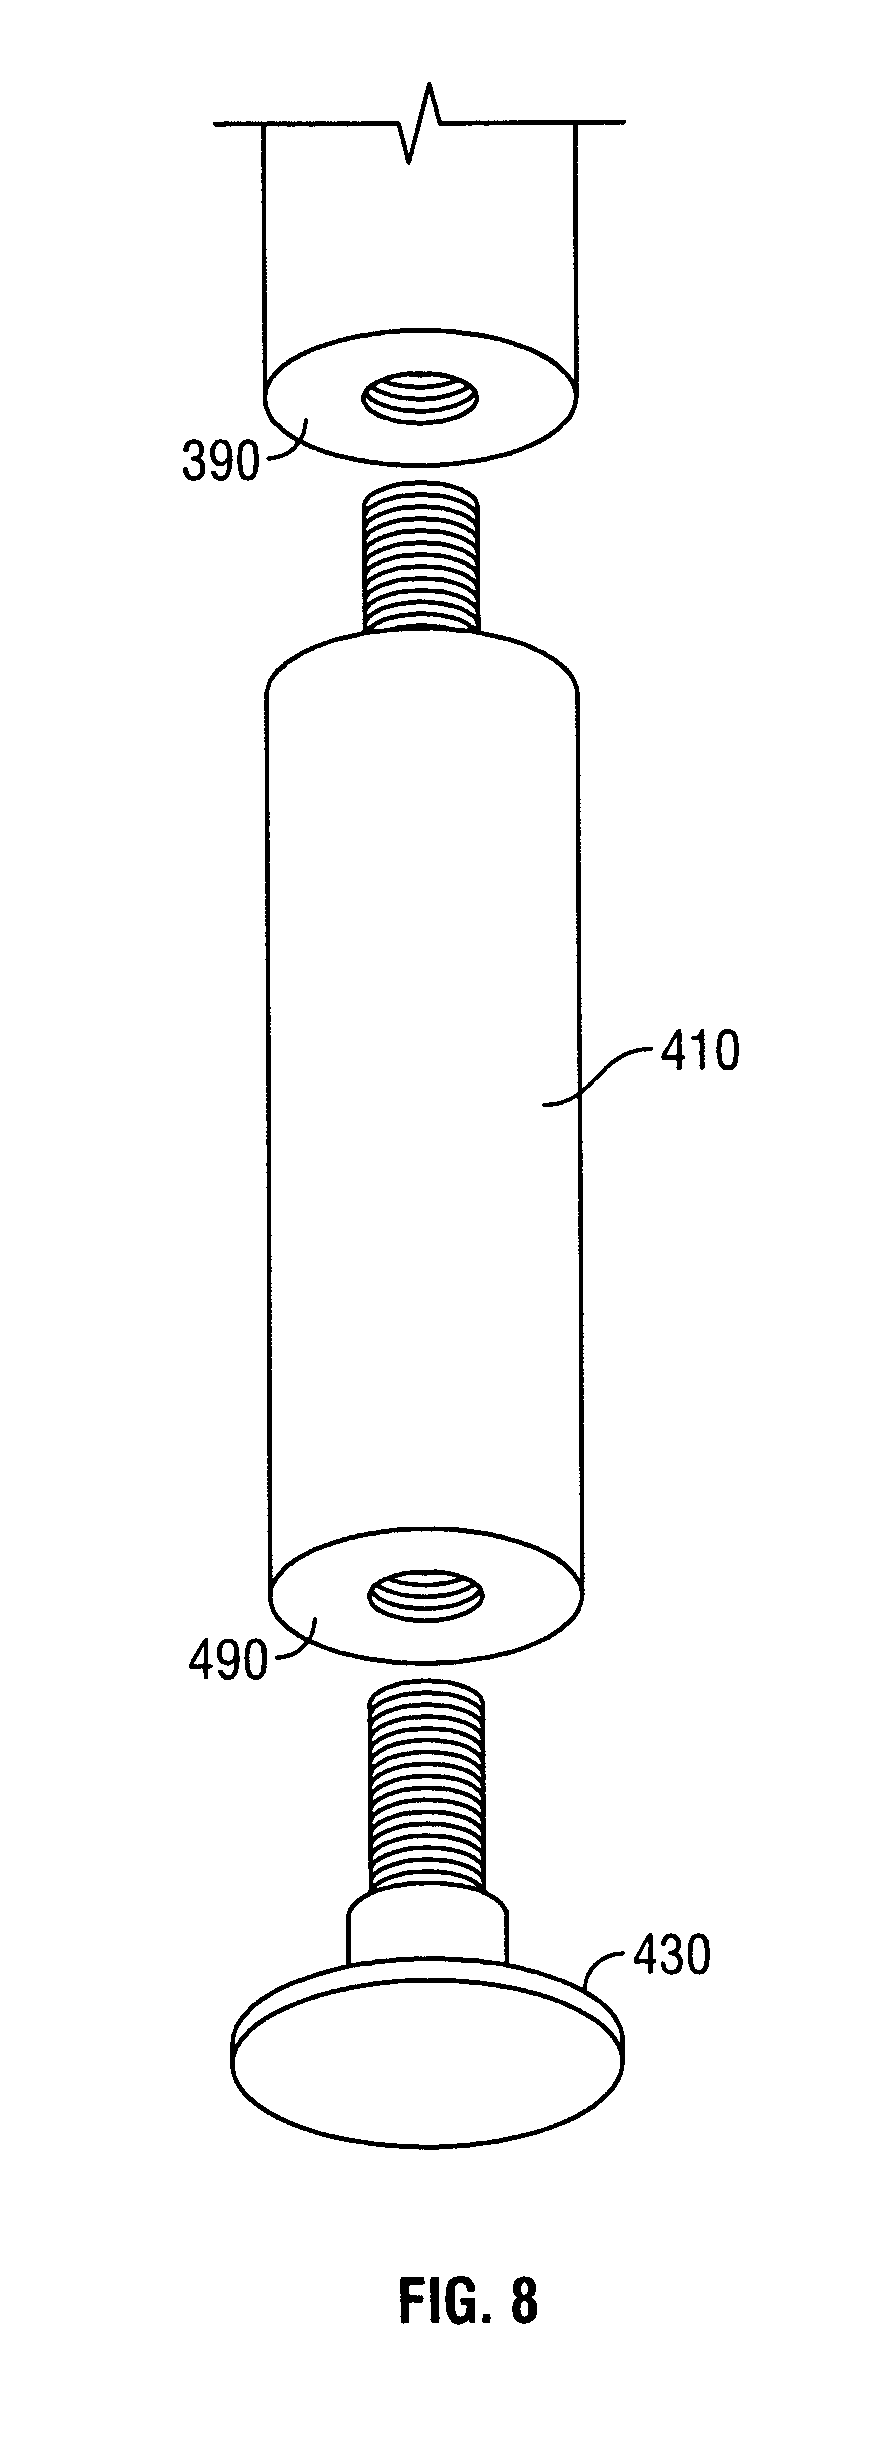 Patent Drawing - Patent US7278687 - System And Method For Bar Stool Height